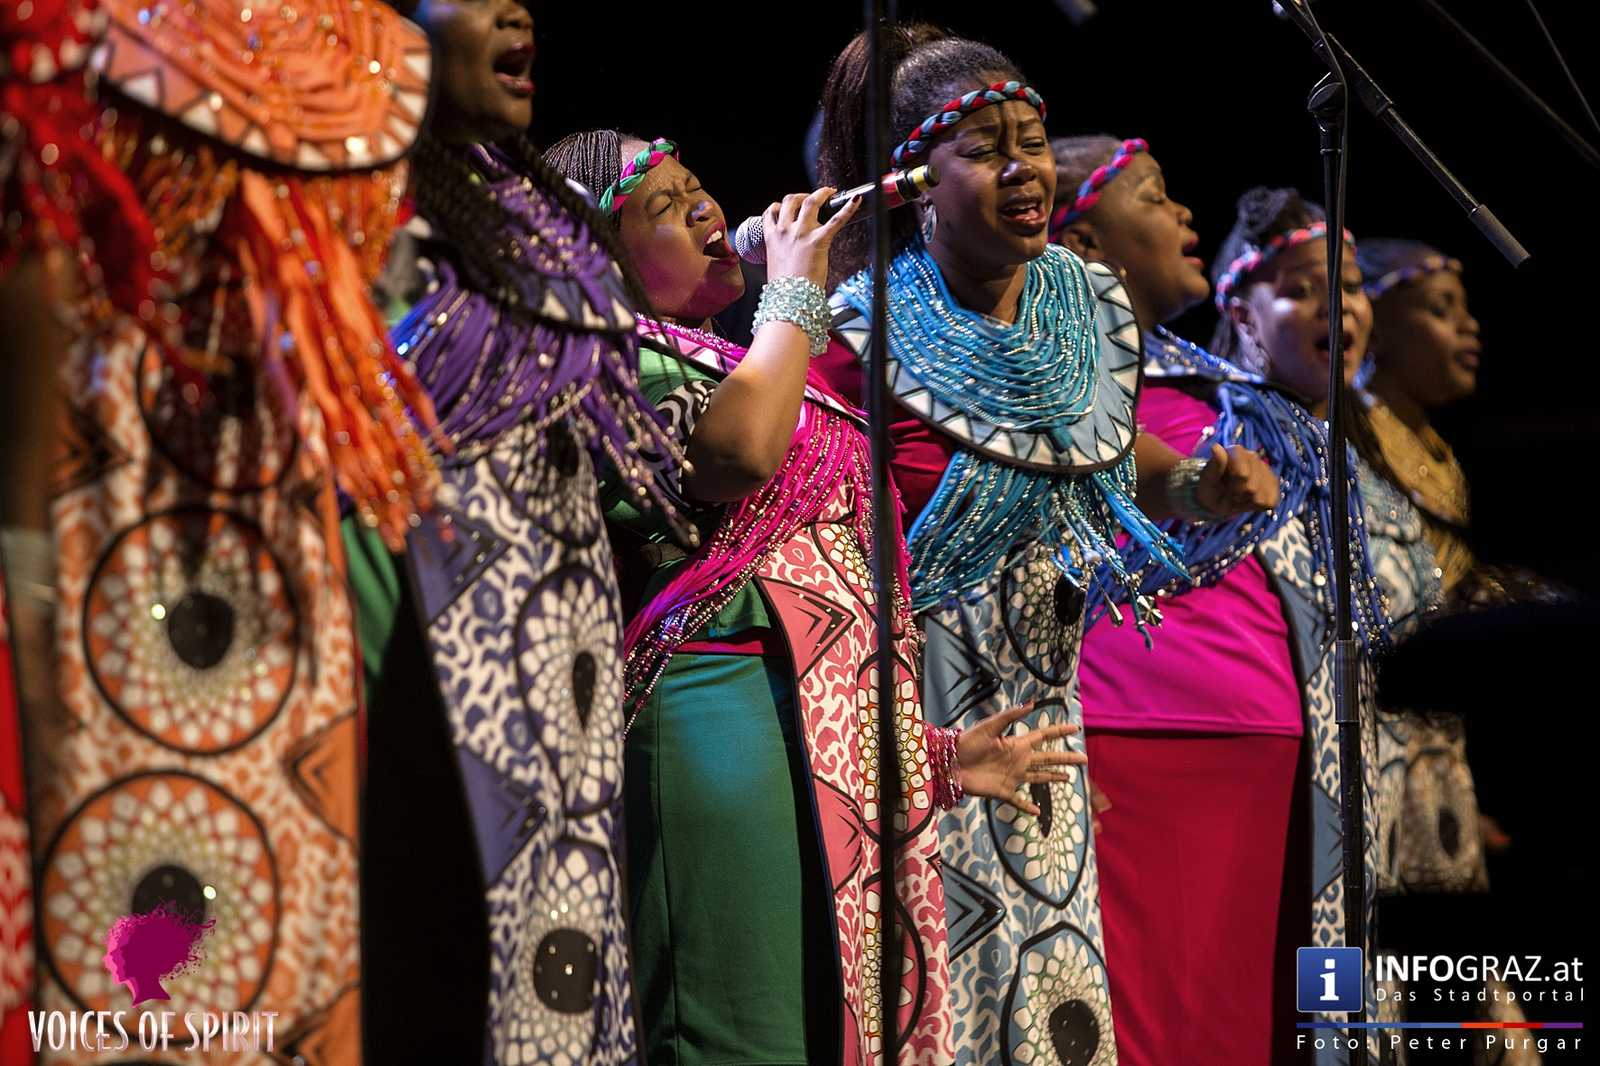 soweto gospel choir internationales chorfestival statdthalle graz voices of spirit eroeffnung festivals 2016 107